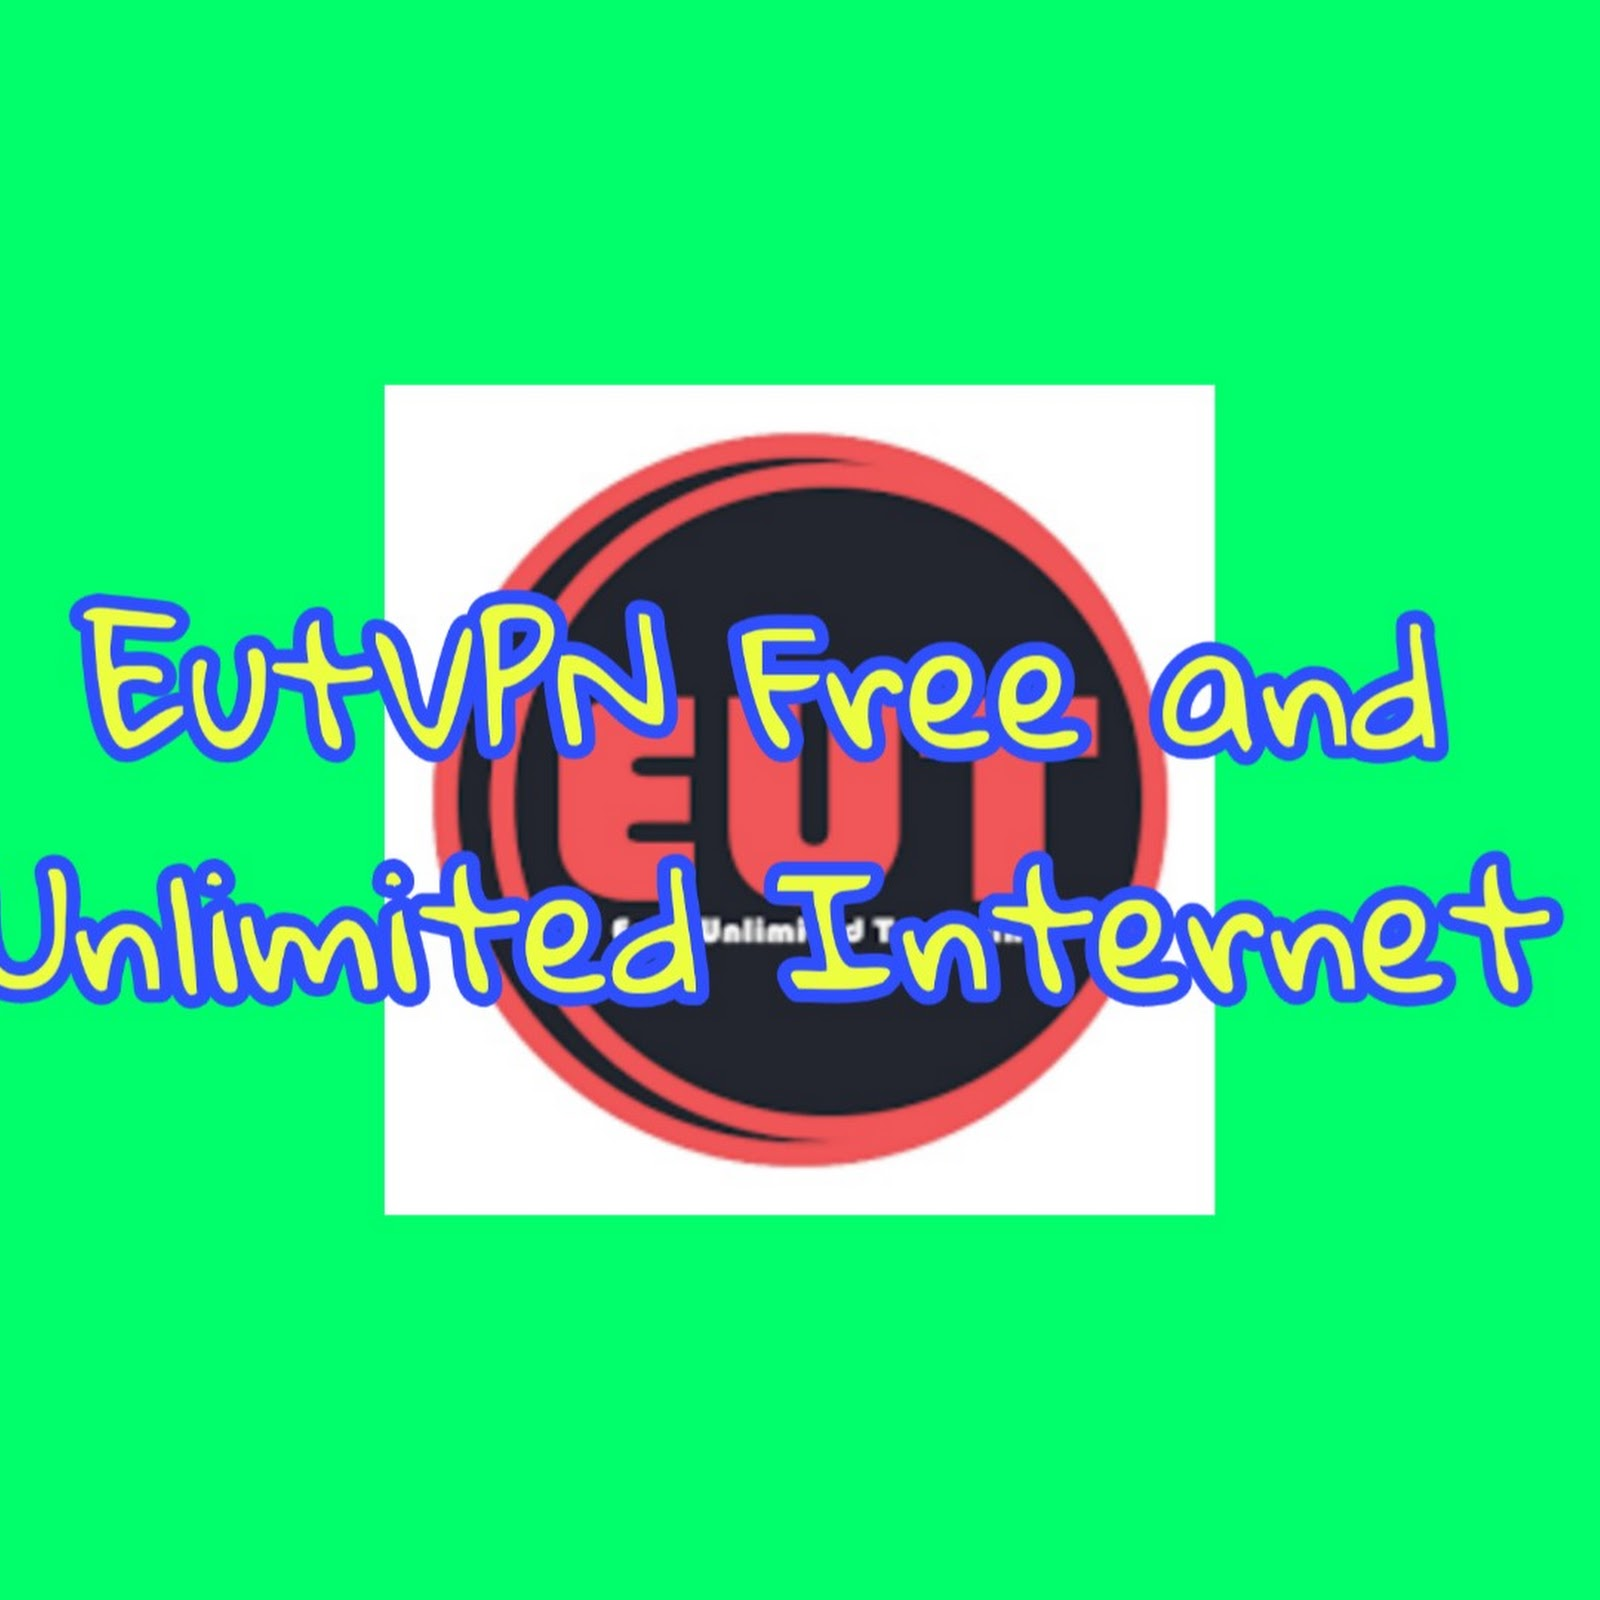 EutVPN - Fast Unlimited Internet Connection And Secure VPN